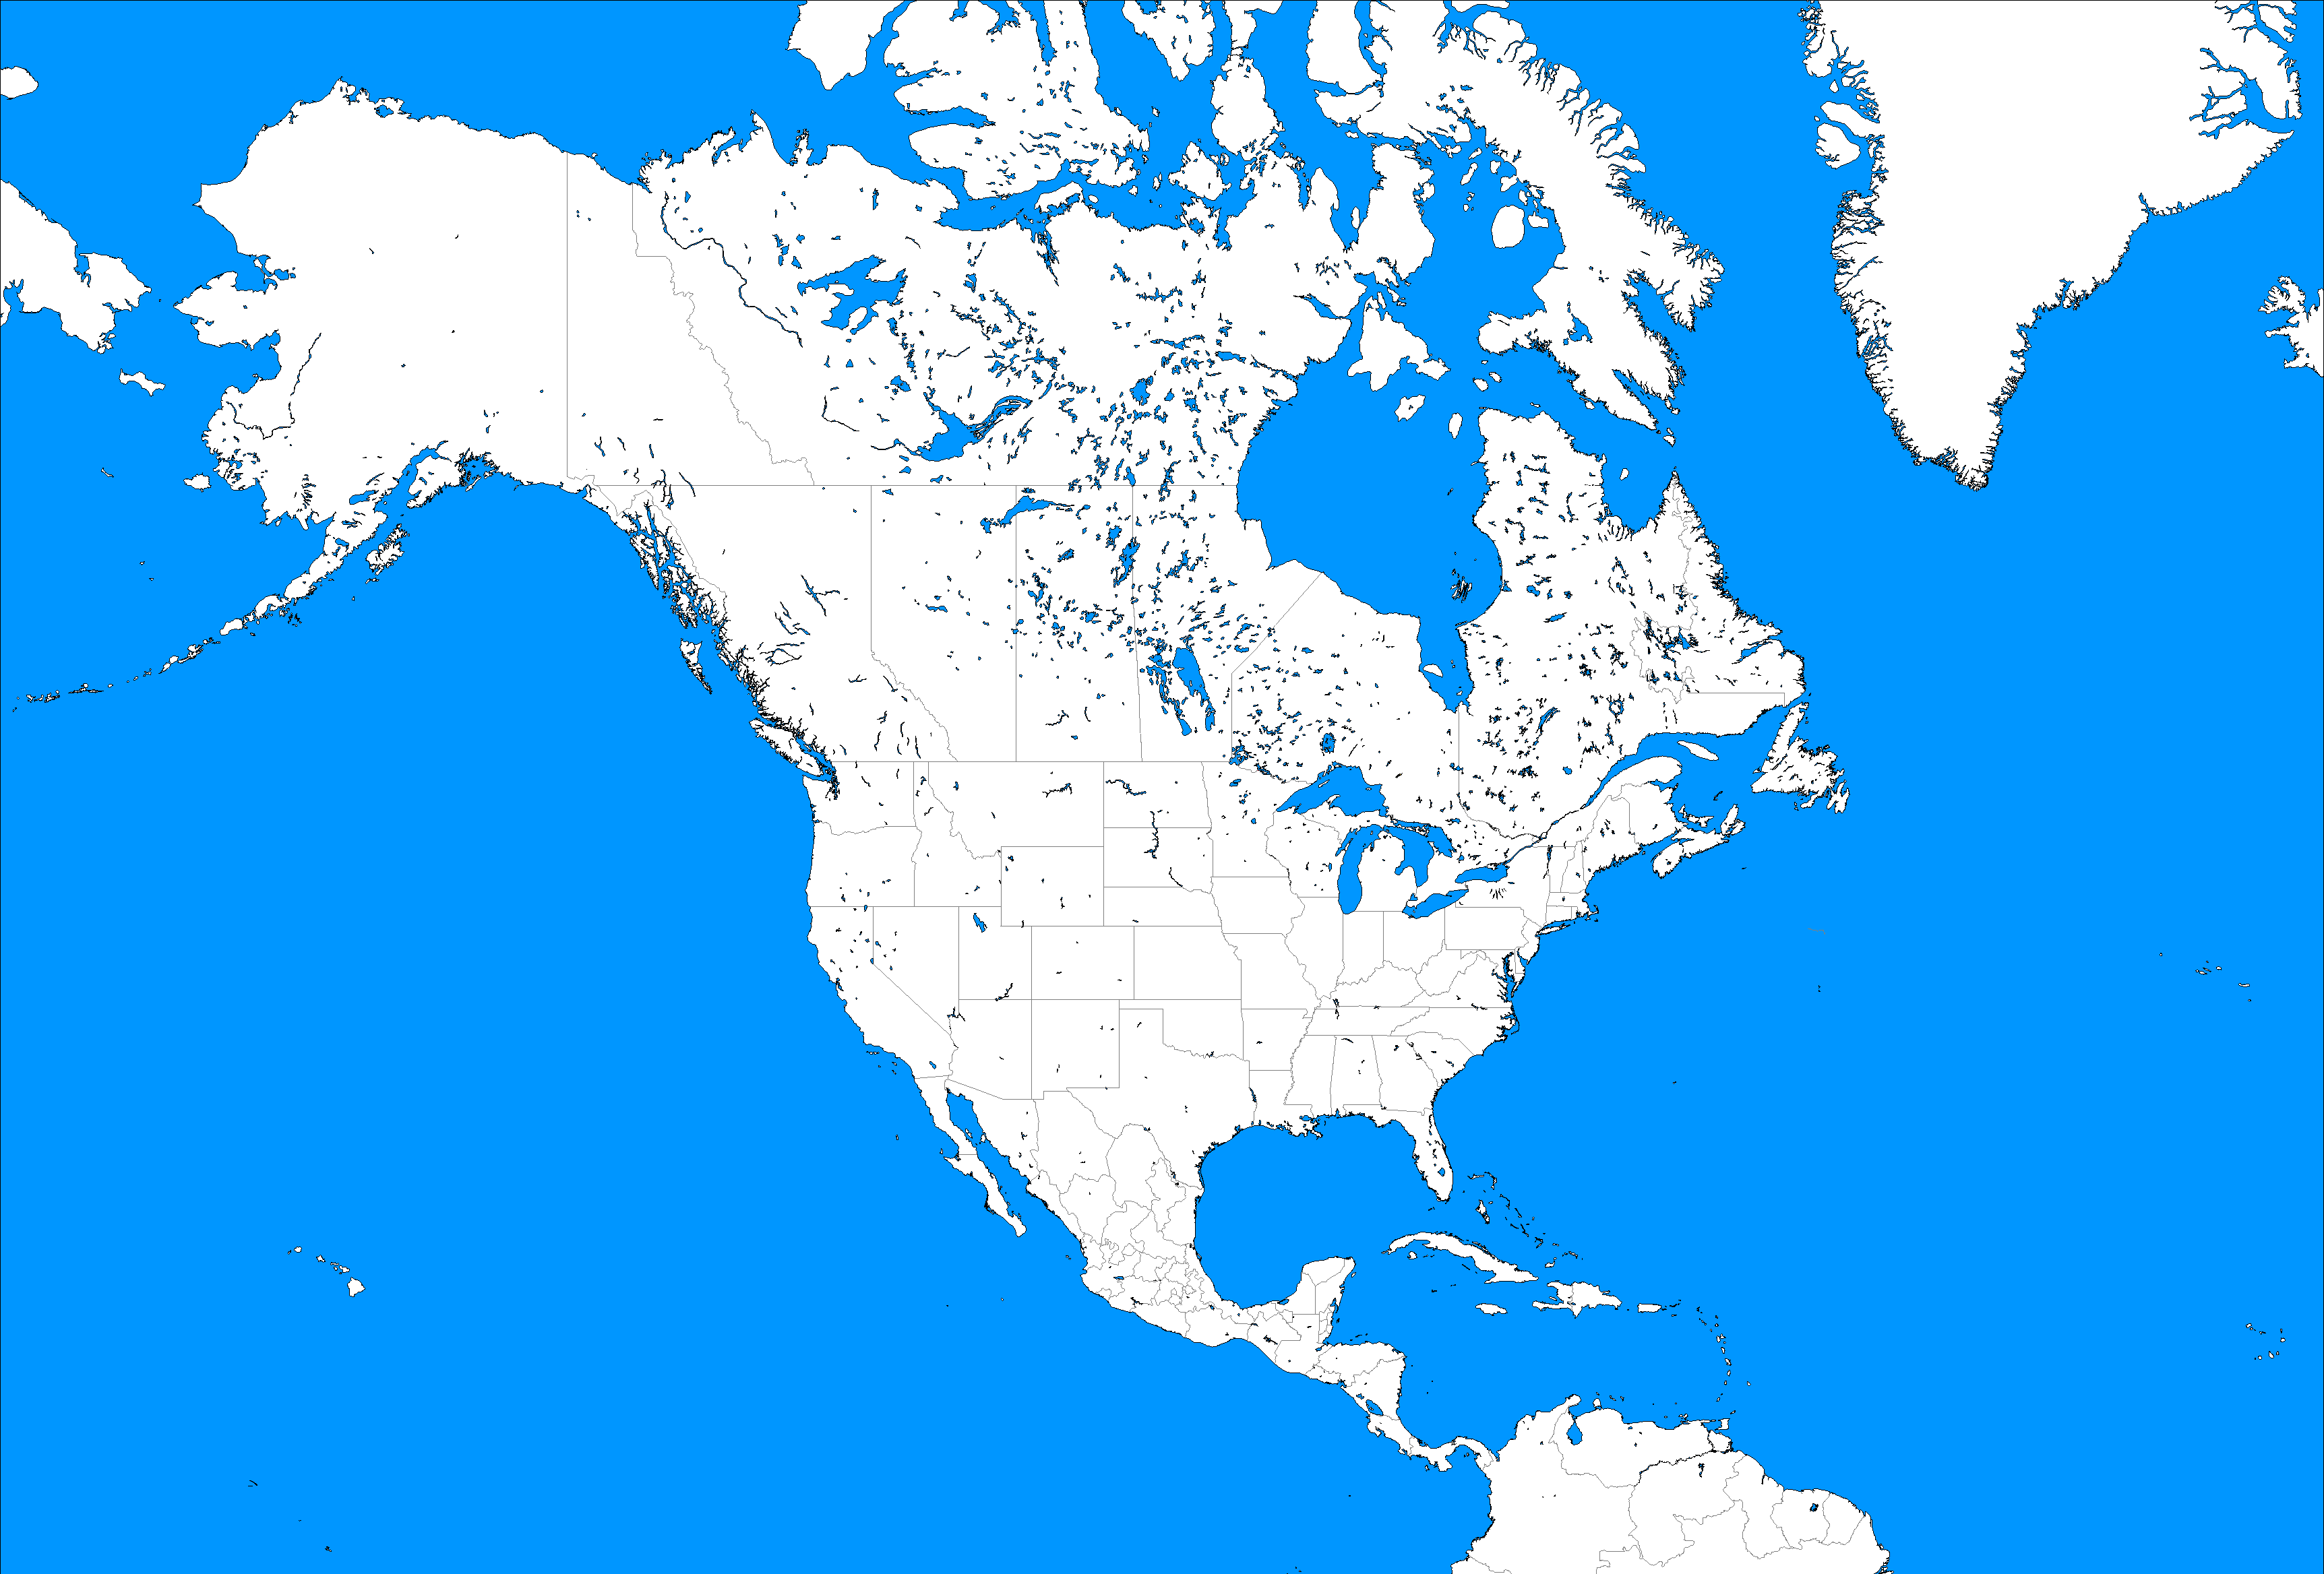 Blankmap explore blankmap on deviantart fennomanic 48 31 large blank north america template by mdc01957 sciox Image collections